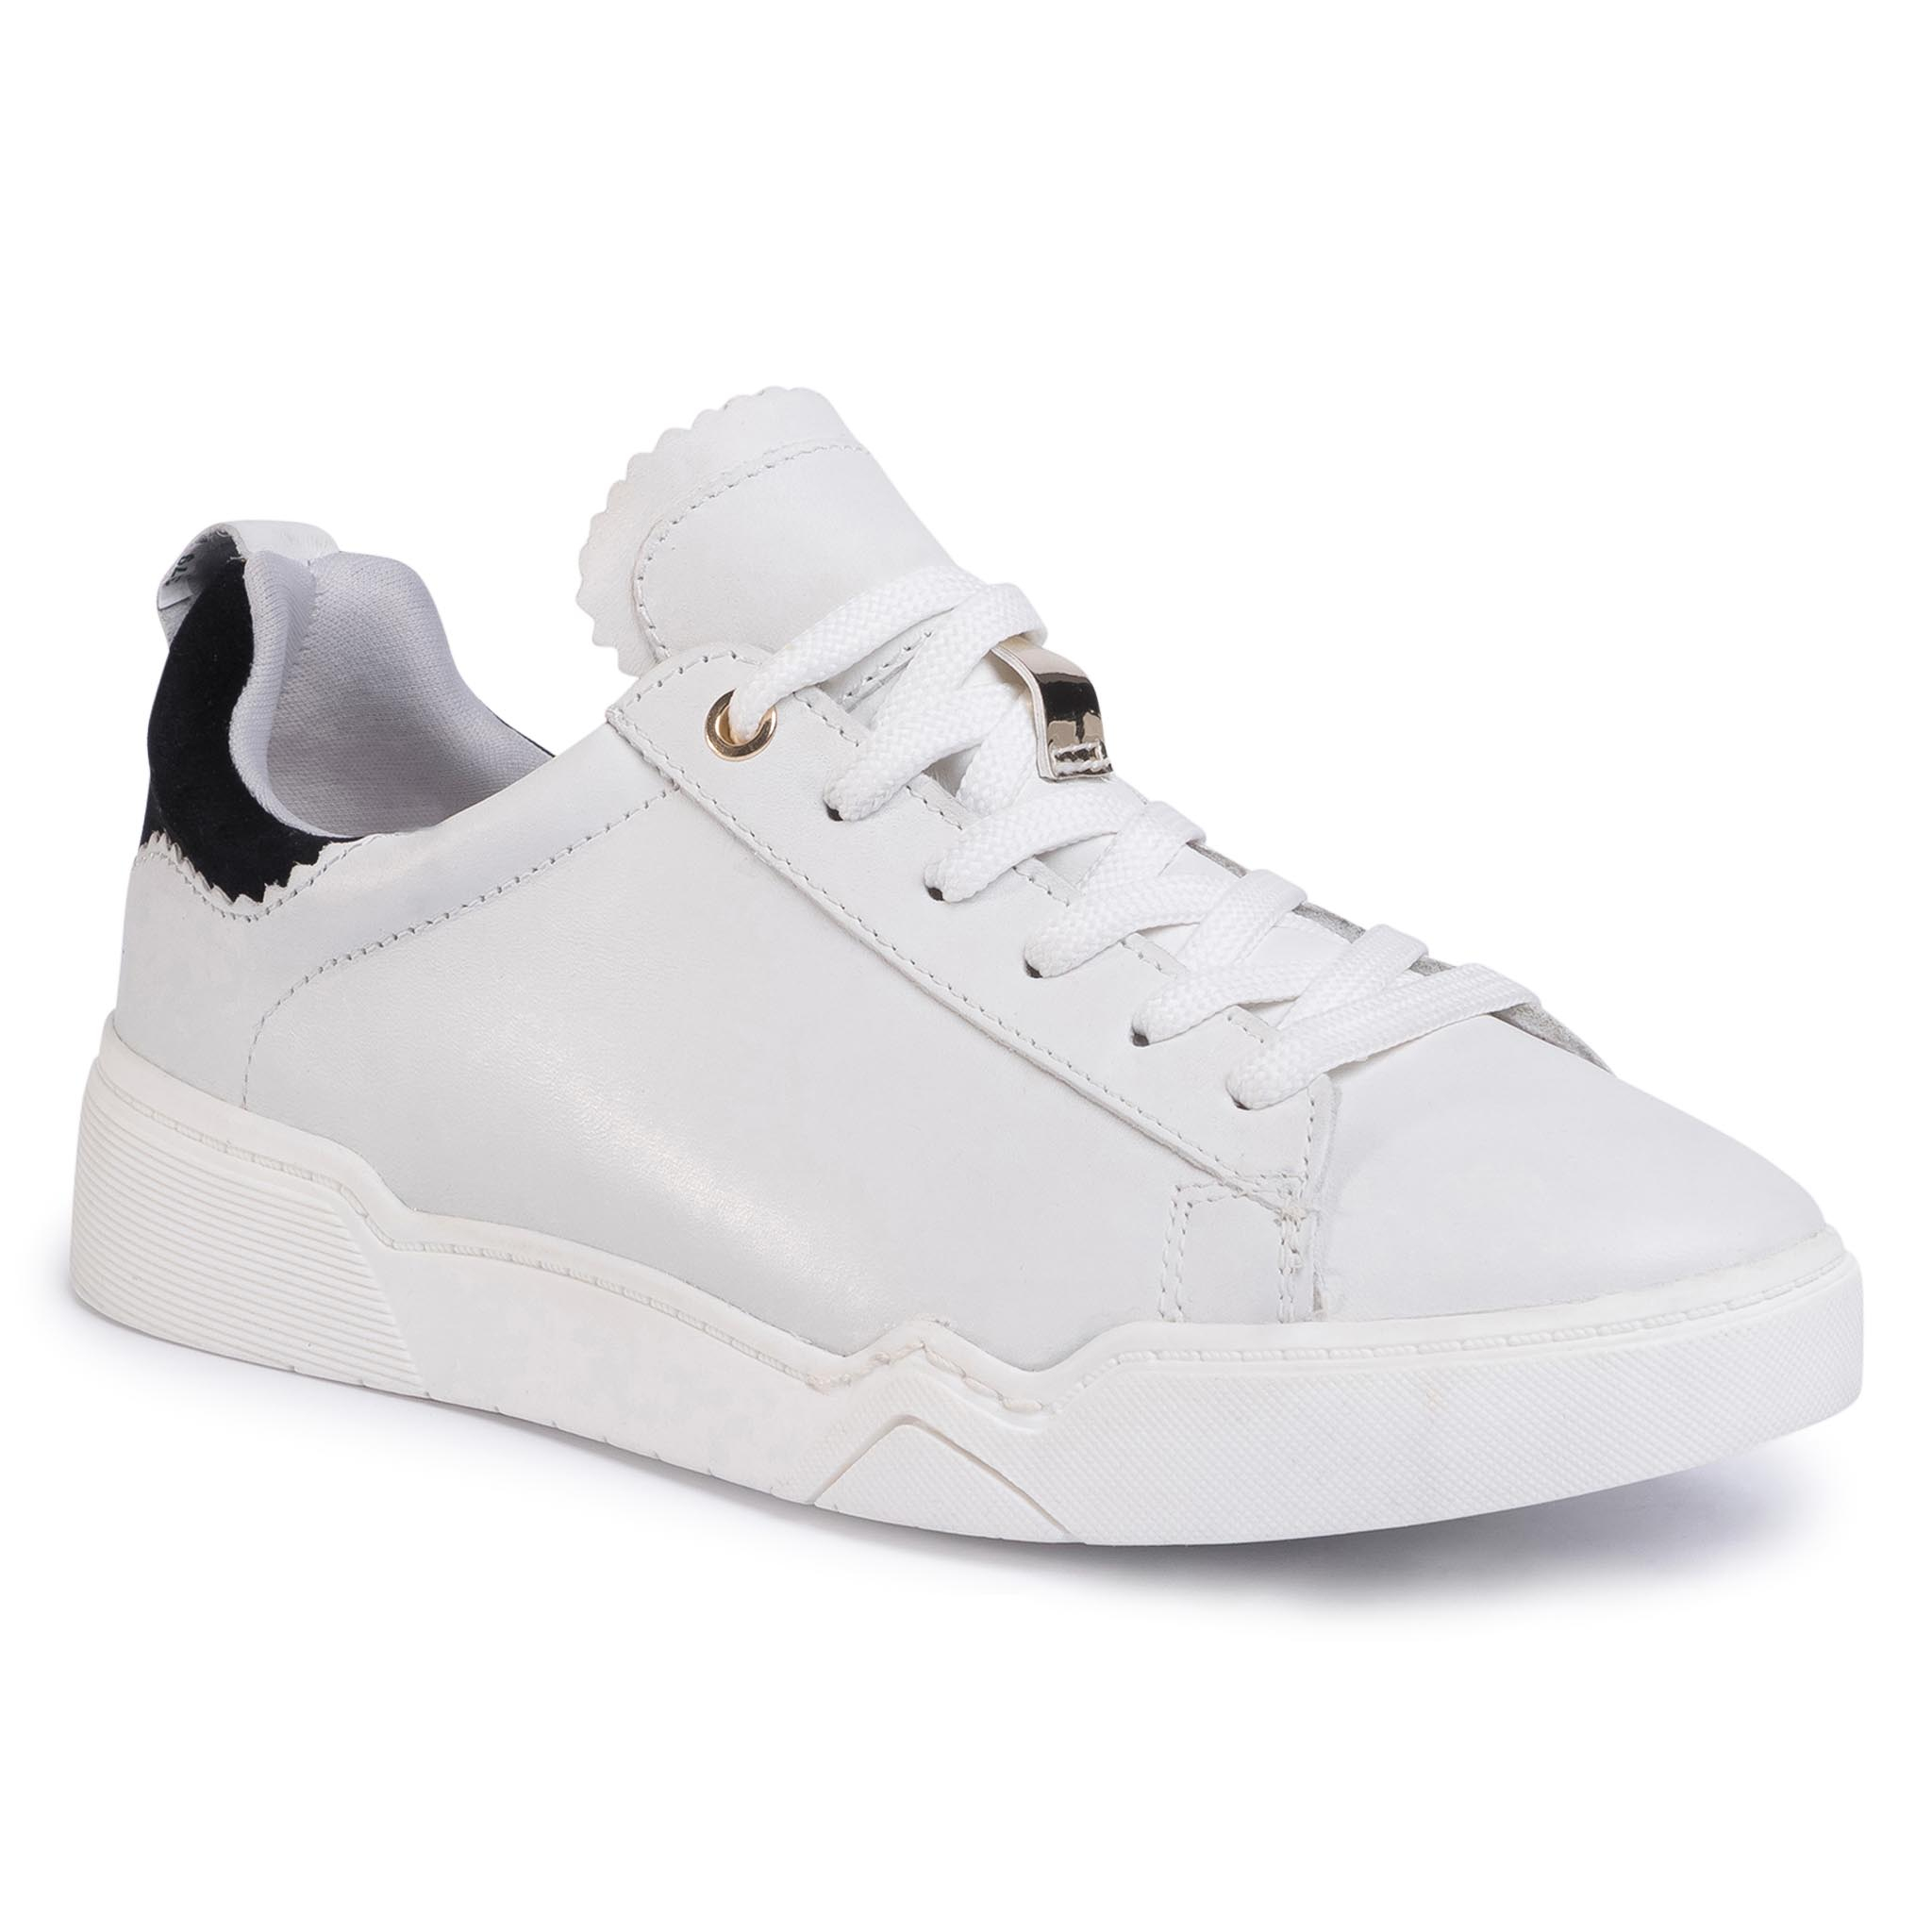 Sneakers TAMARIS - 1-23793-34 Wht/Blk/Gold 265